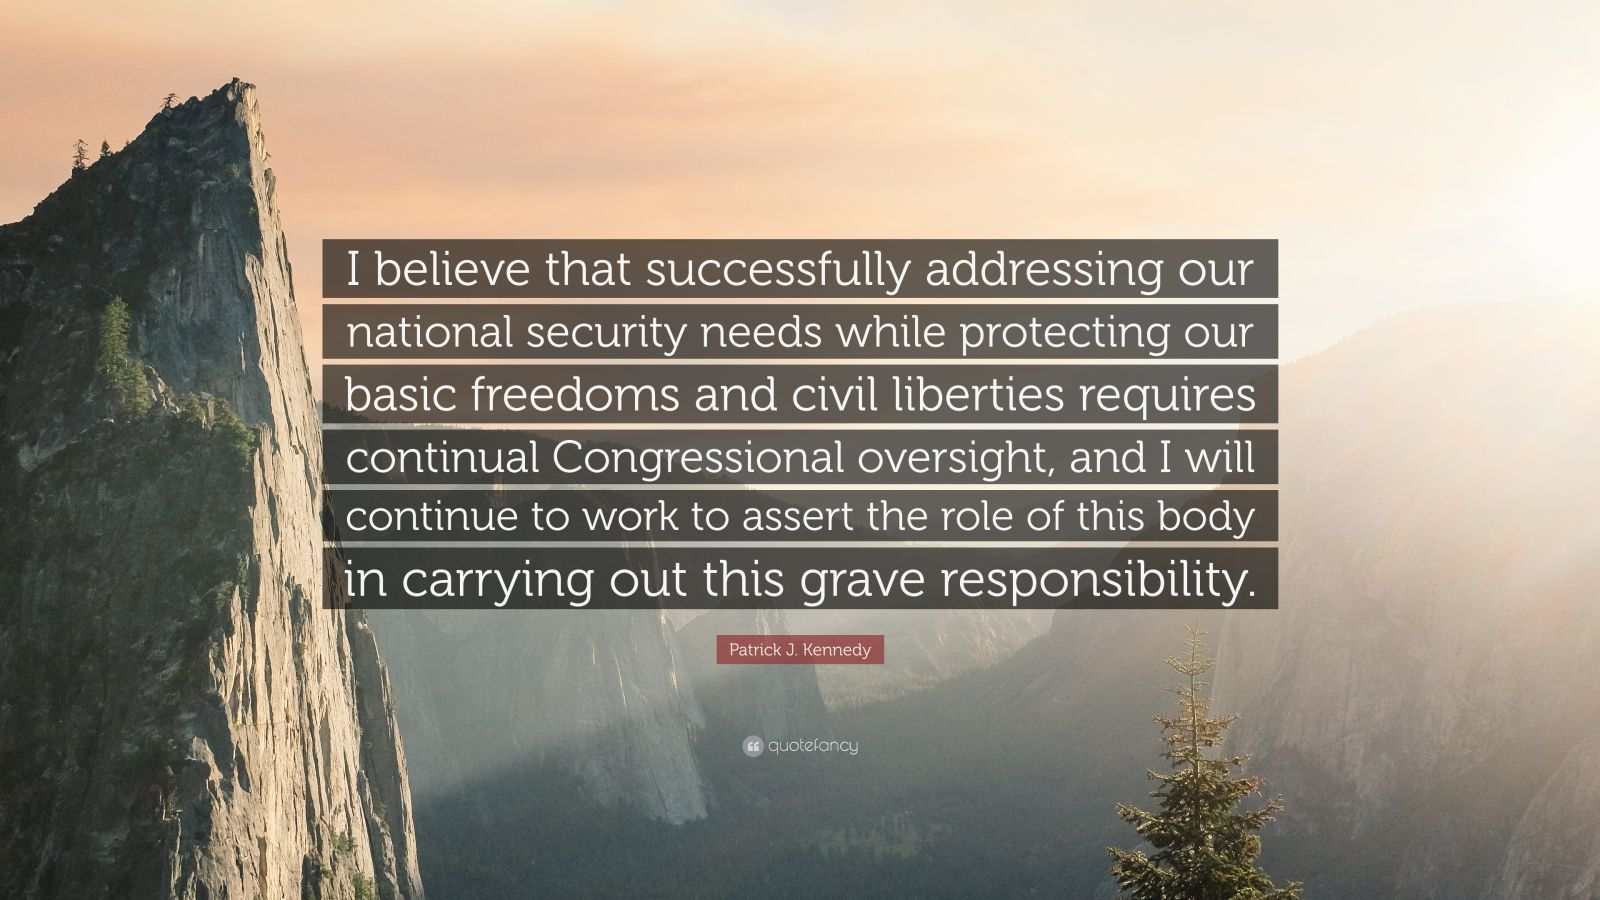 "Patrick J. Kennedy Quote: ""I believe that successfully addressing our national security needs while protecting our basic freedoms and civil liberties requires continual Congressional oversight, and I will continue to work to assert the role of this body in carrying out this grave responsibility."""